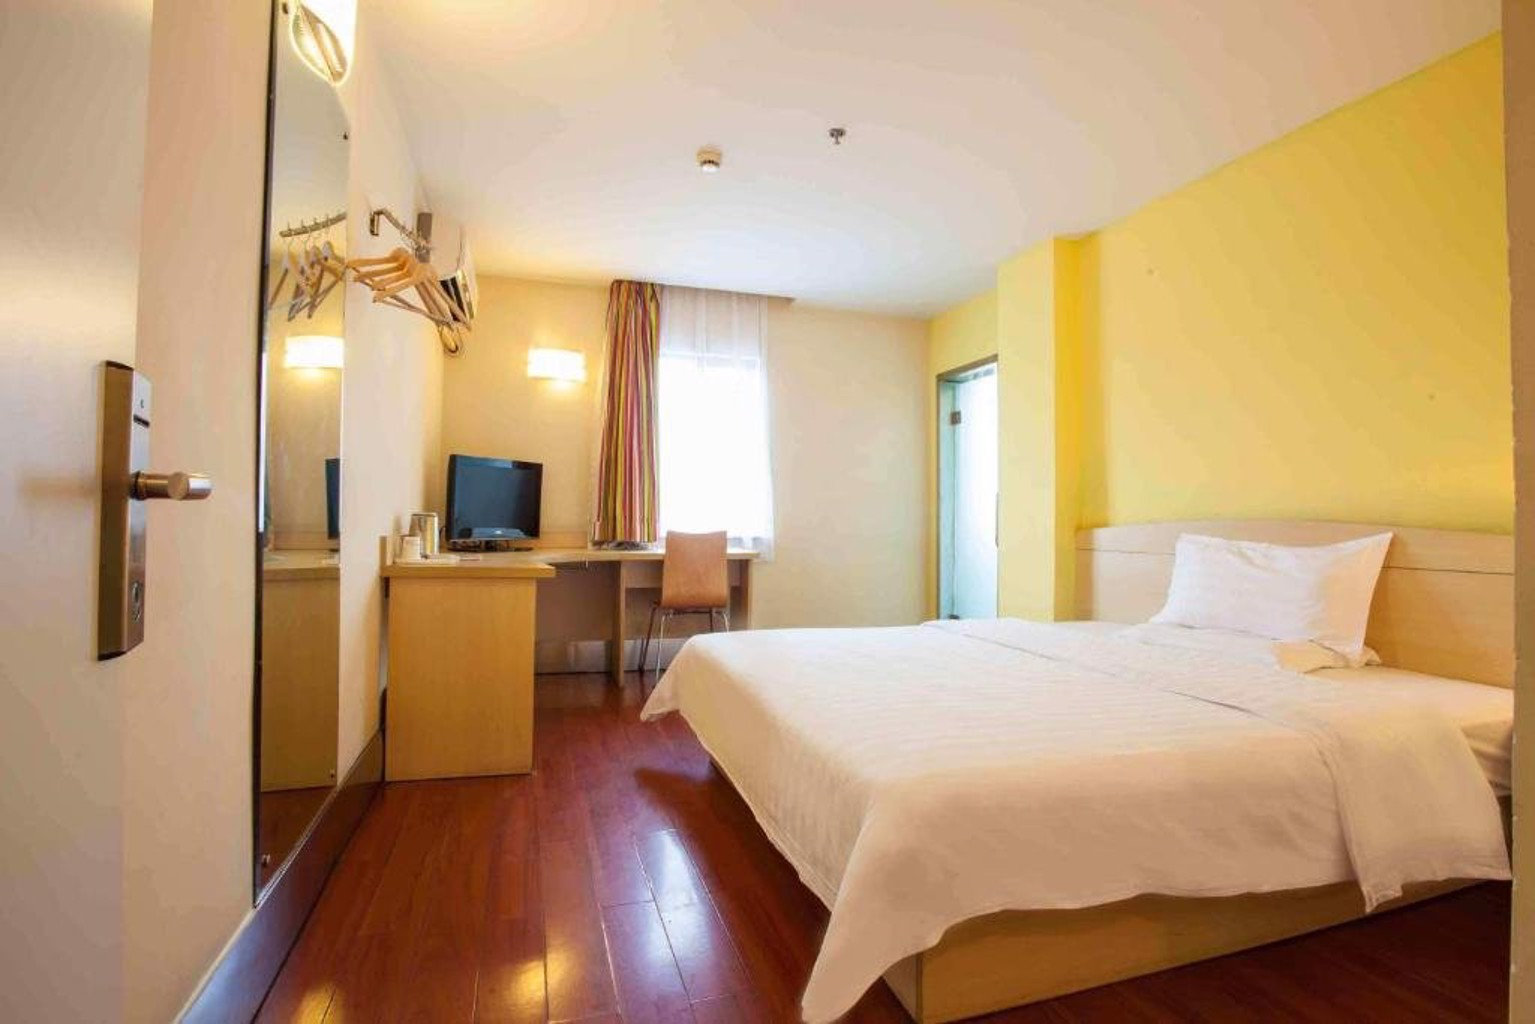 Gallery image of 7Days Inn Shenzhen Long Hua